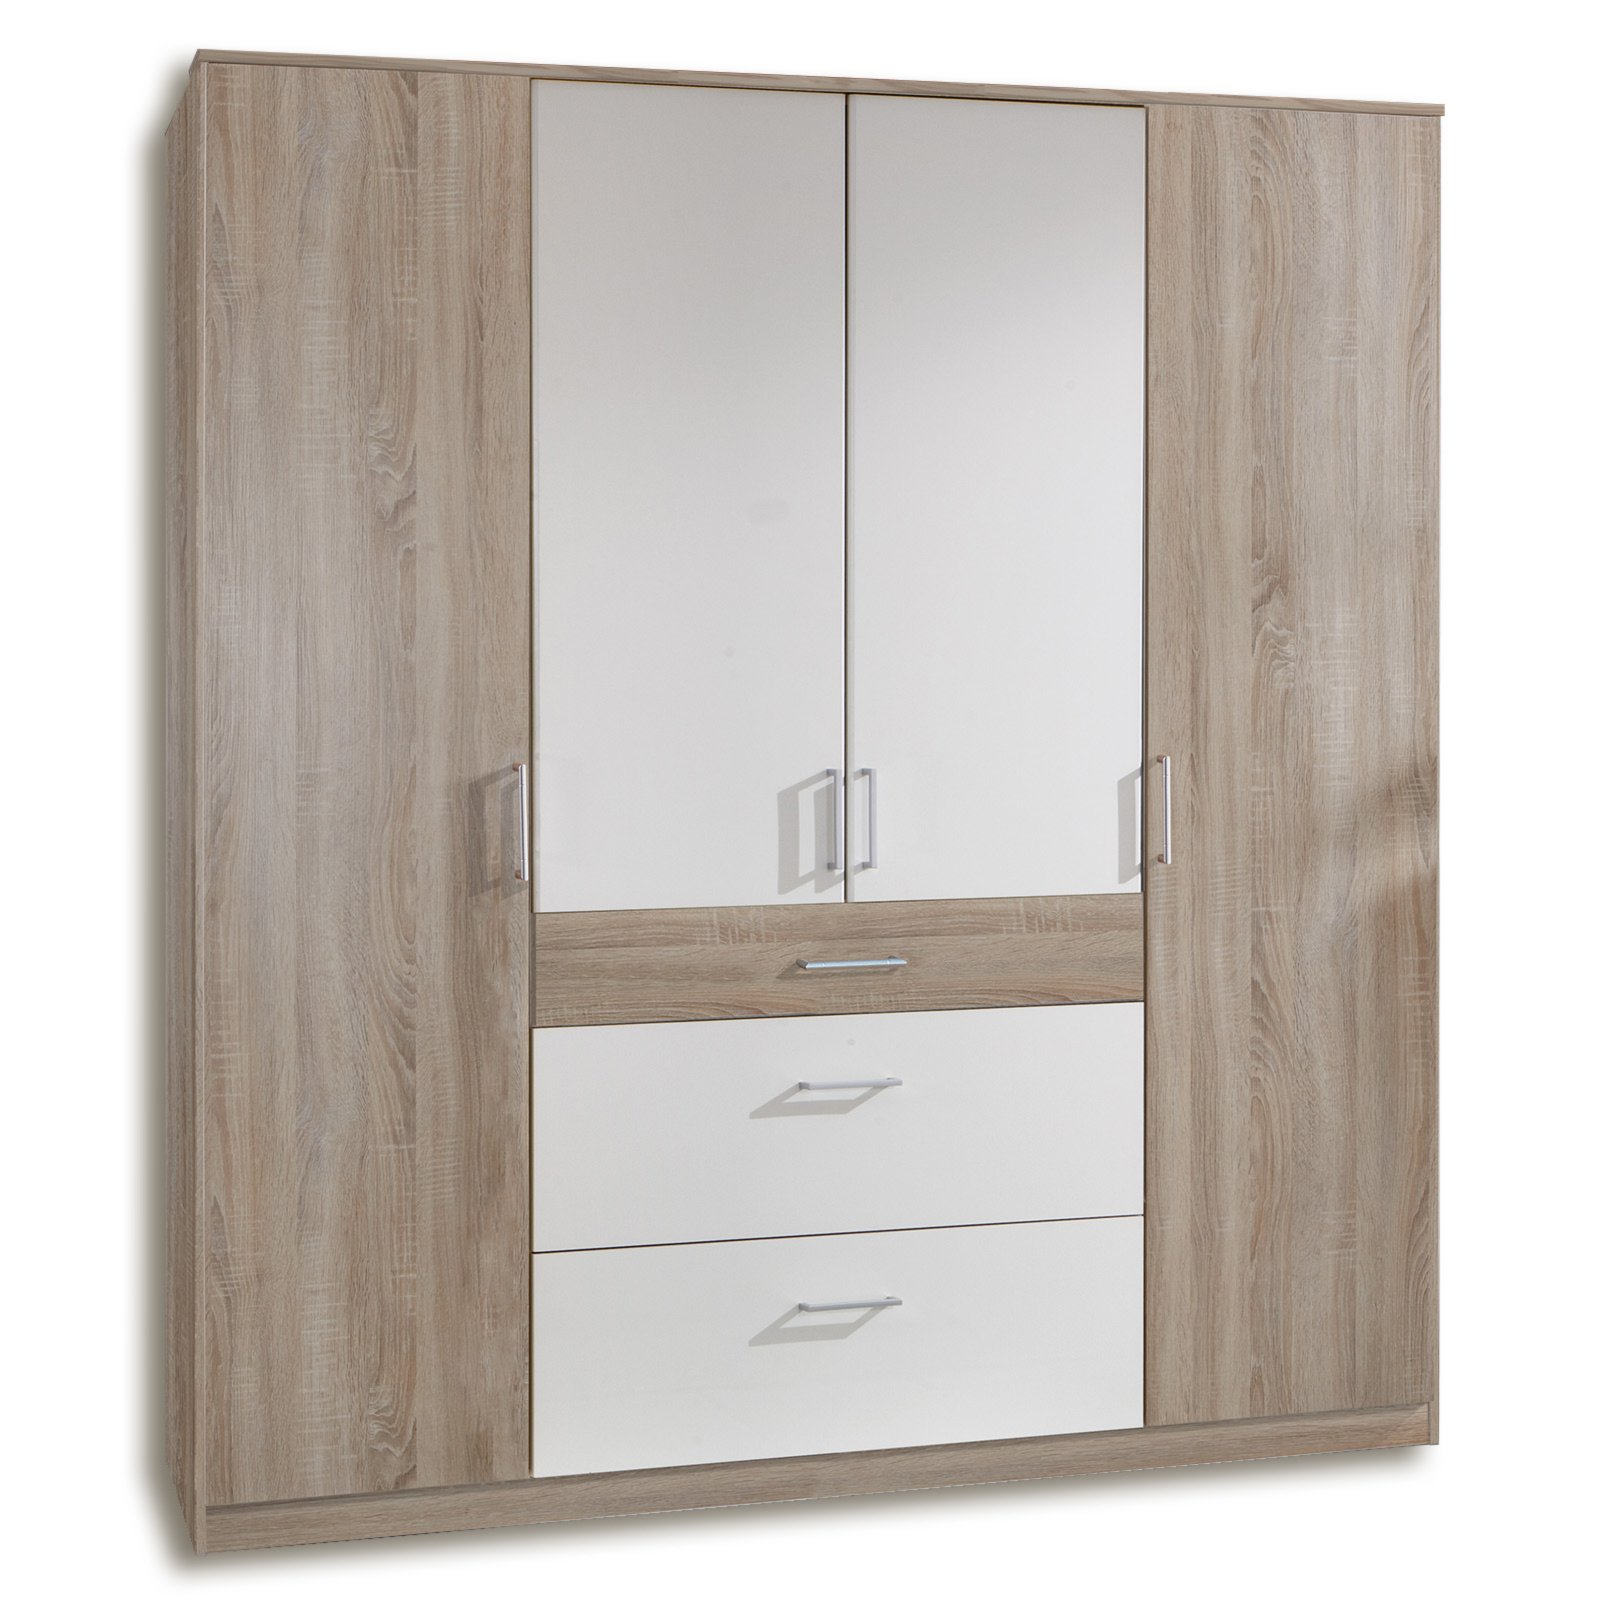 kleiderschrank breite 180 cm preisvergleiche erfahrungsberichte und kauf bei nextag. Black Bedroom Furniture Sets. Home Design Ideas